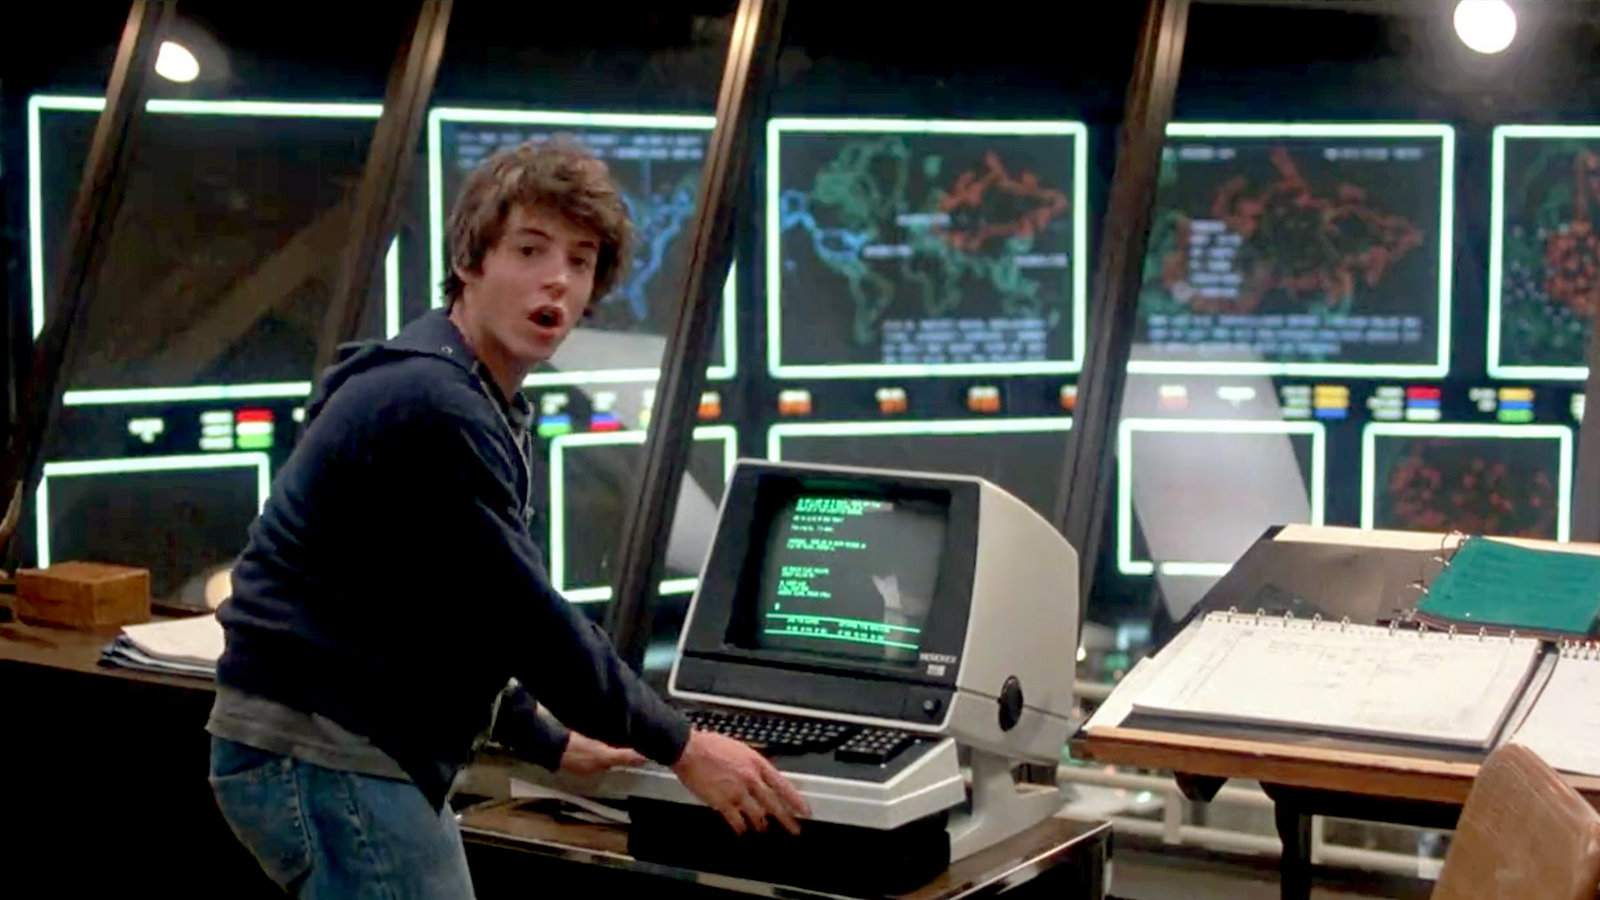 Wargames is one of the best and must watch Hollywood movies for Software Engineers